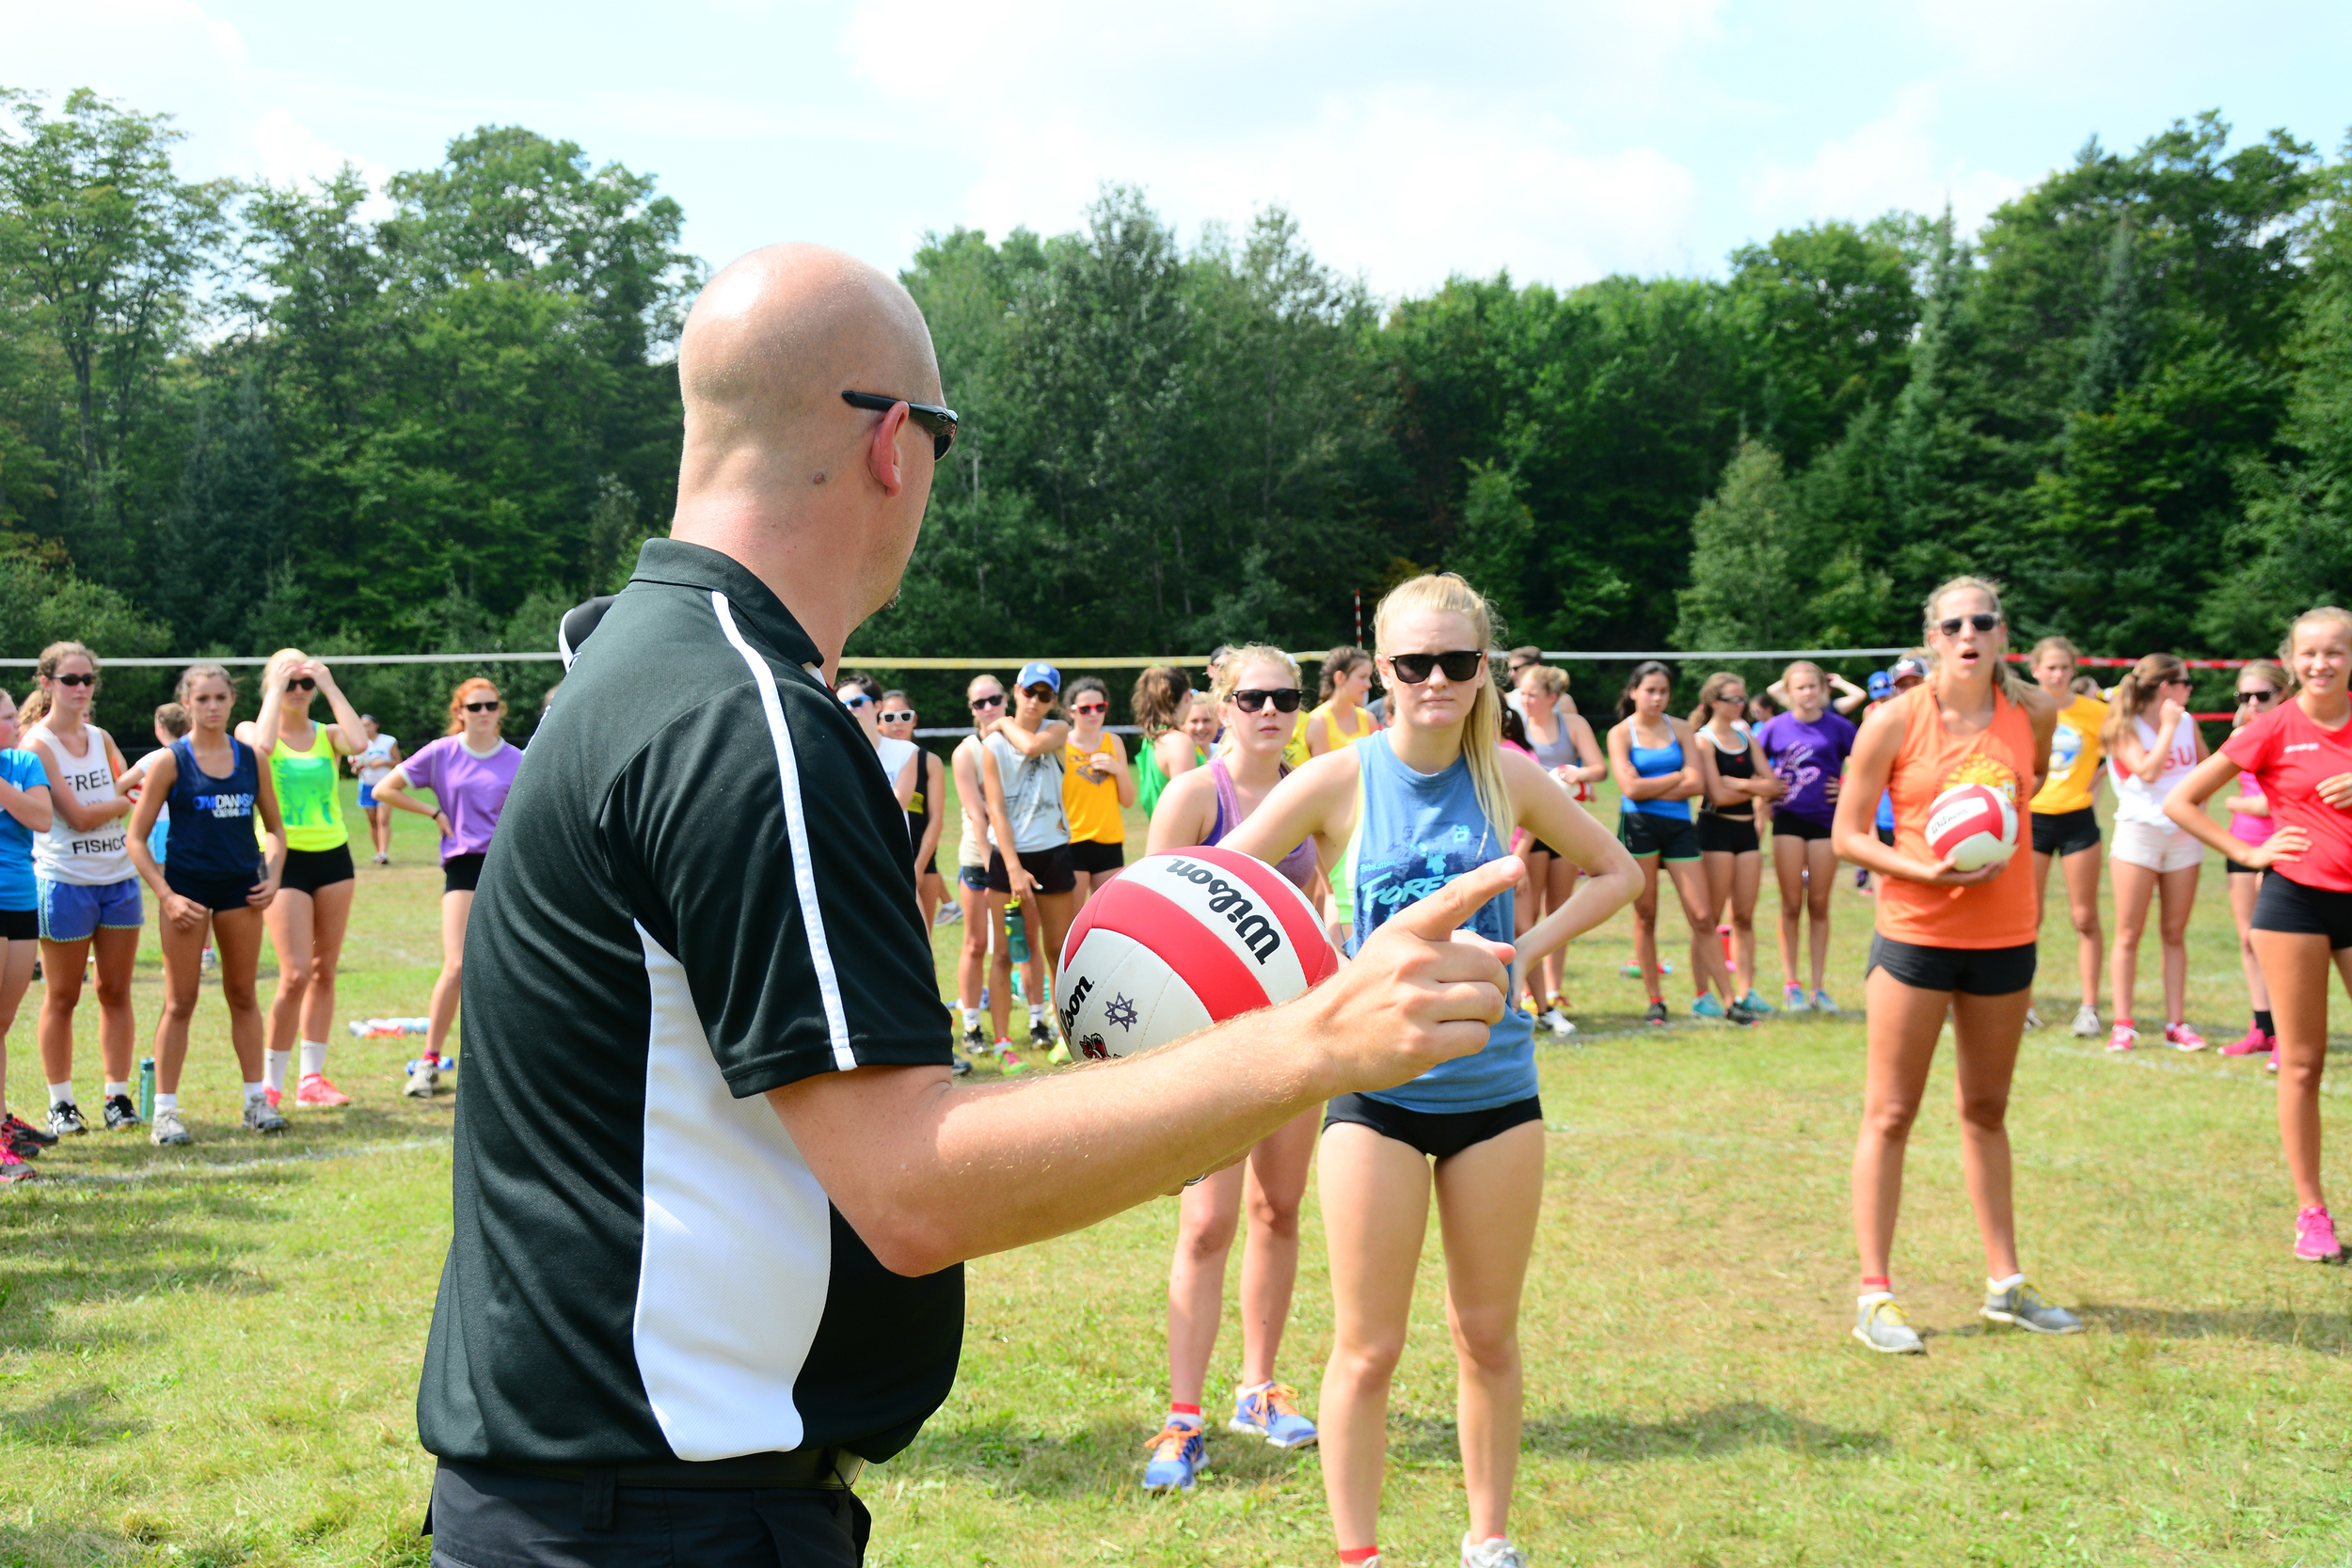 Shayne White of The University of Waterloo - One of the guest coaches this past summer.